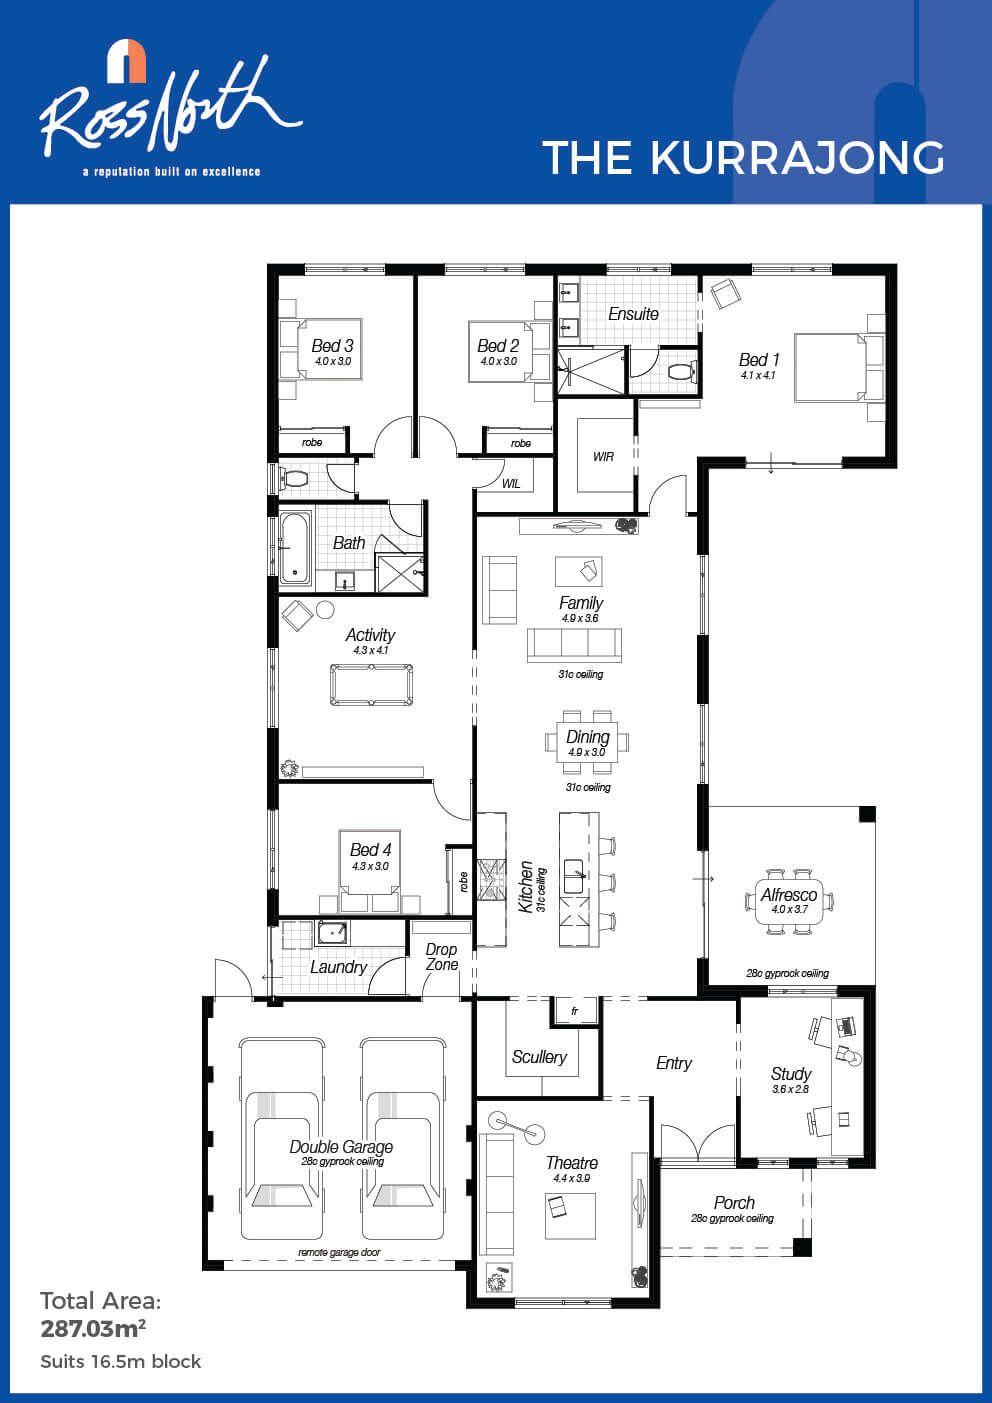 Master bedroom ensuite plans  The Kurrajong  Ross North Homes  All Things House Design